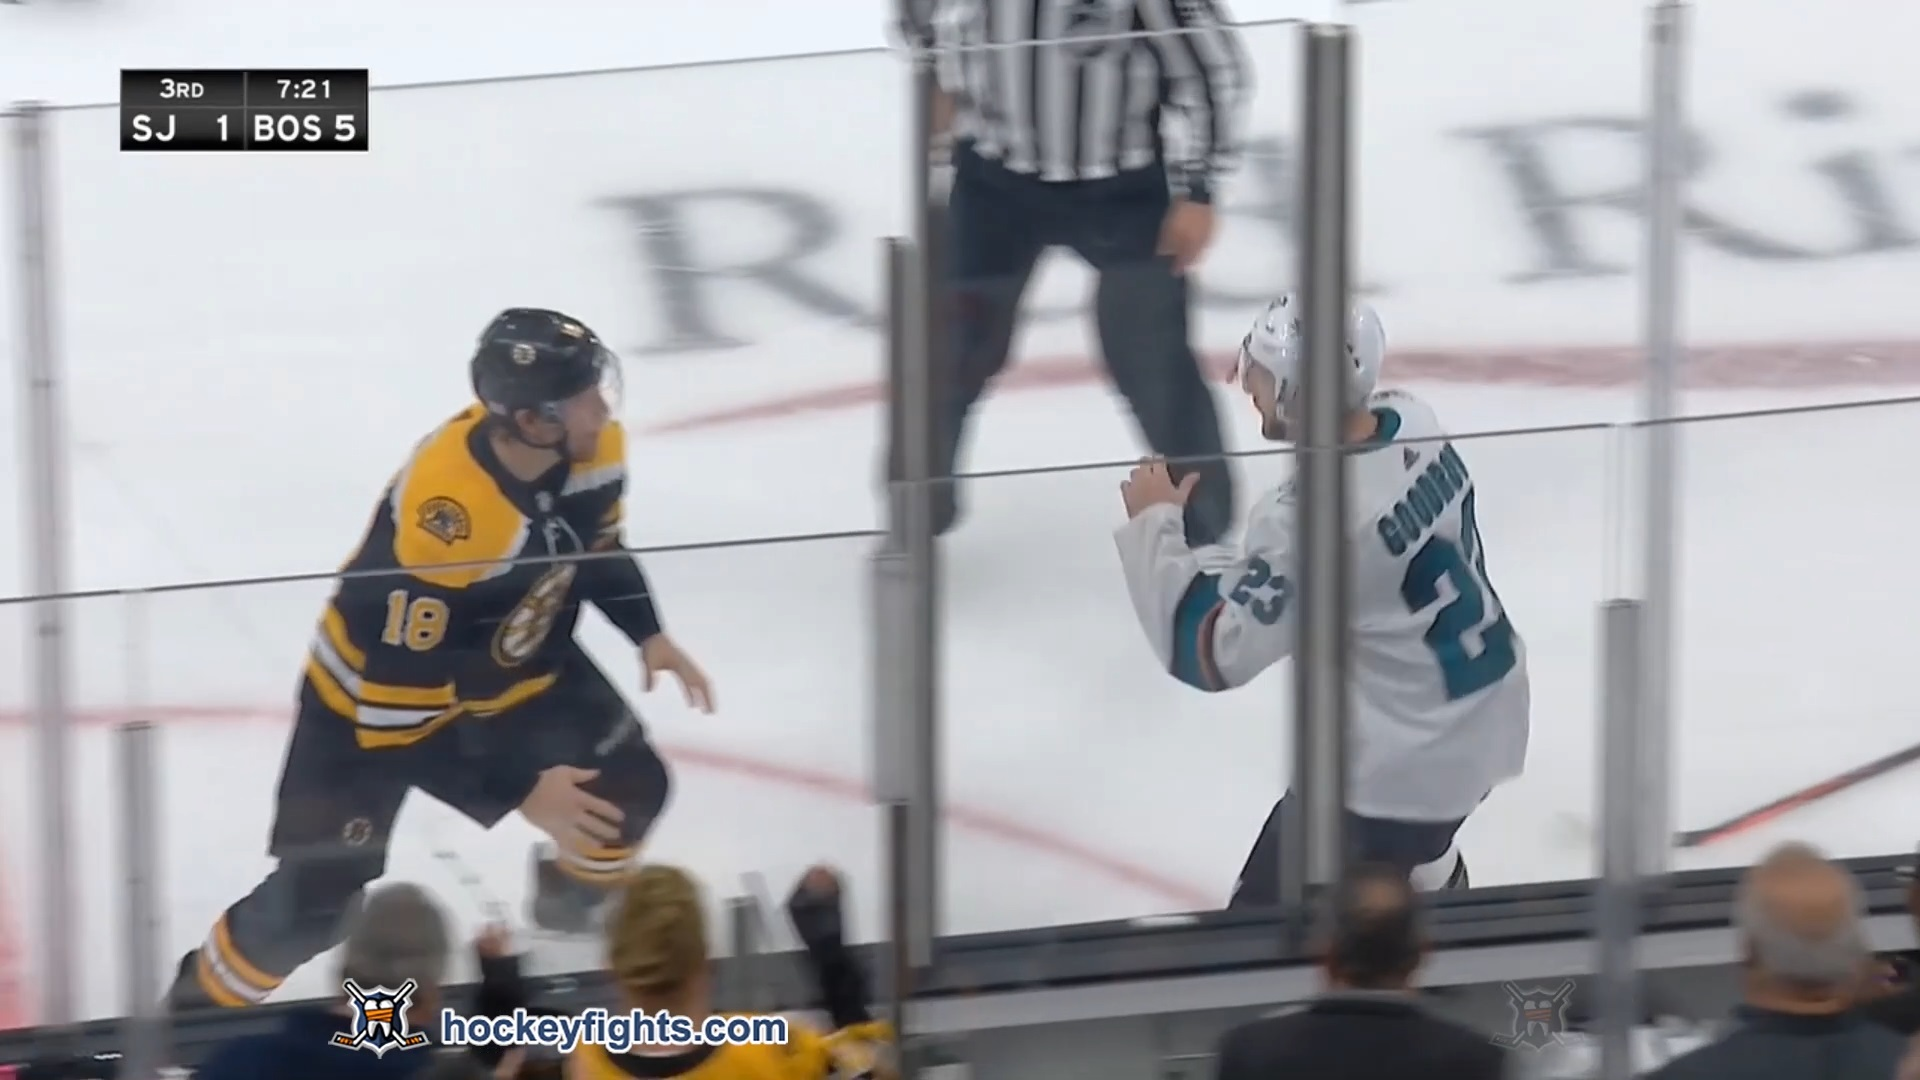 Brett Ritchie vs. Barclay Goodrow